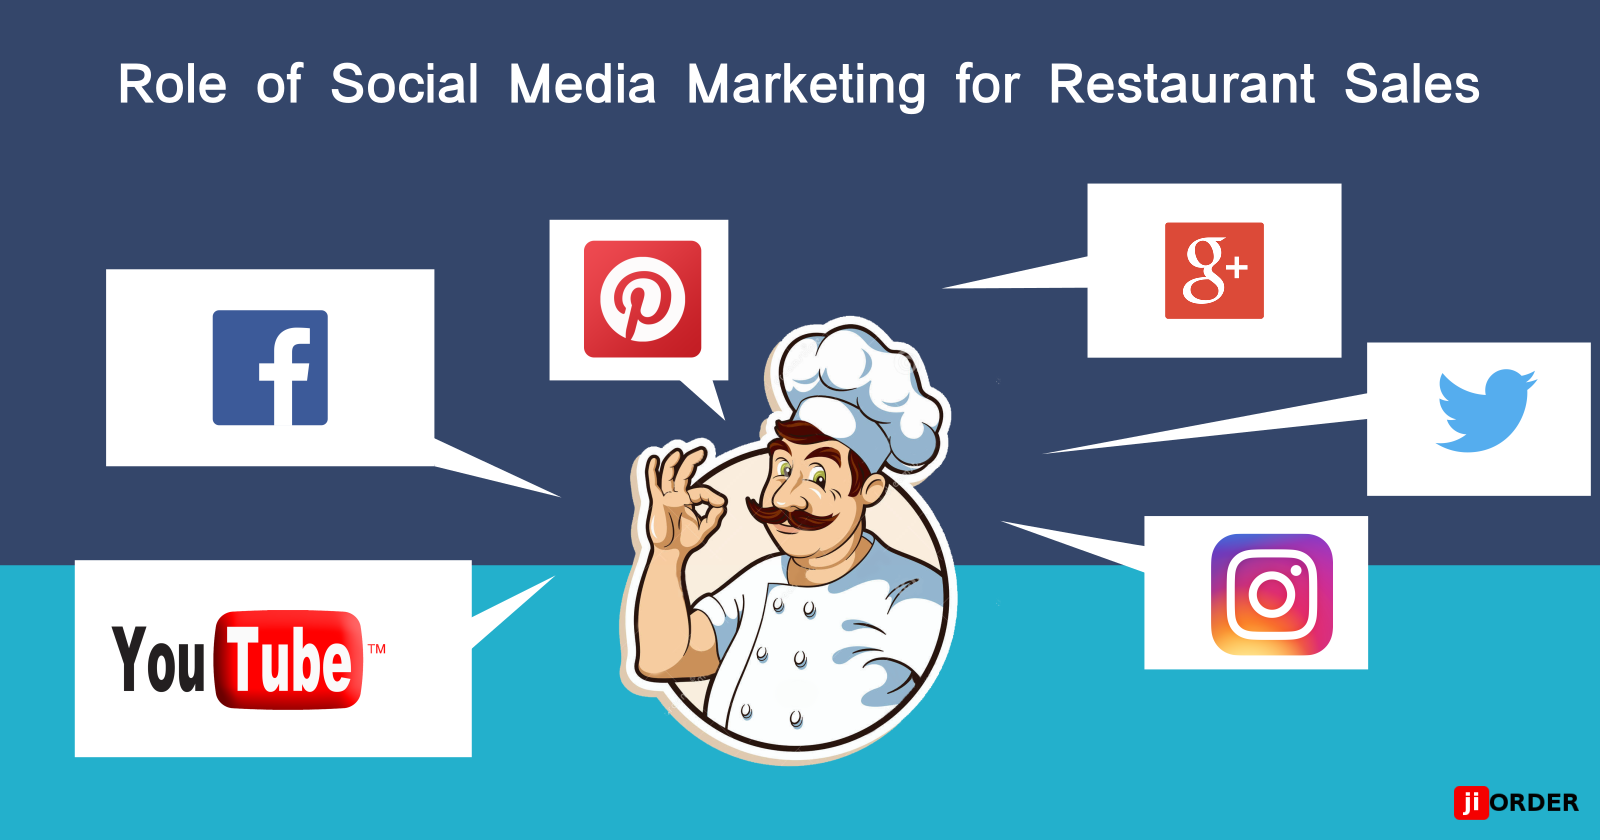 How Social Media Marketing Impacts your Restaurant Sales